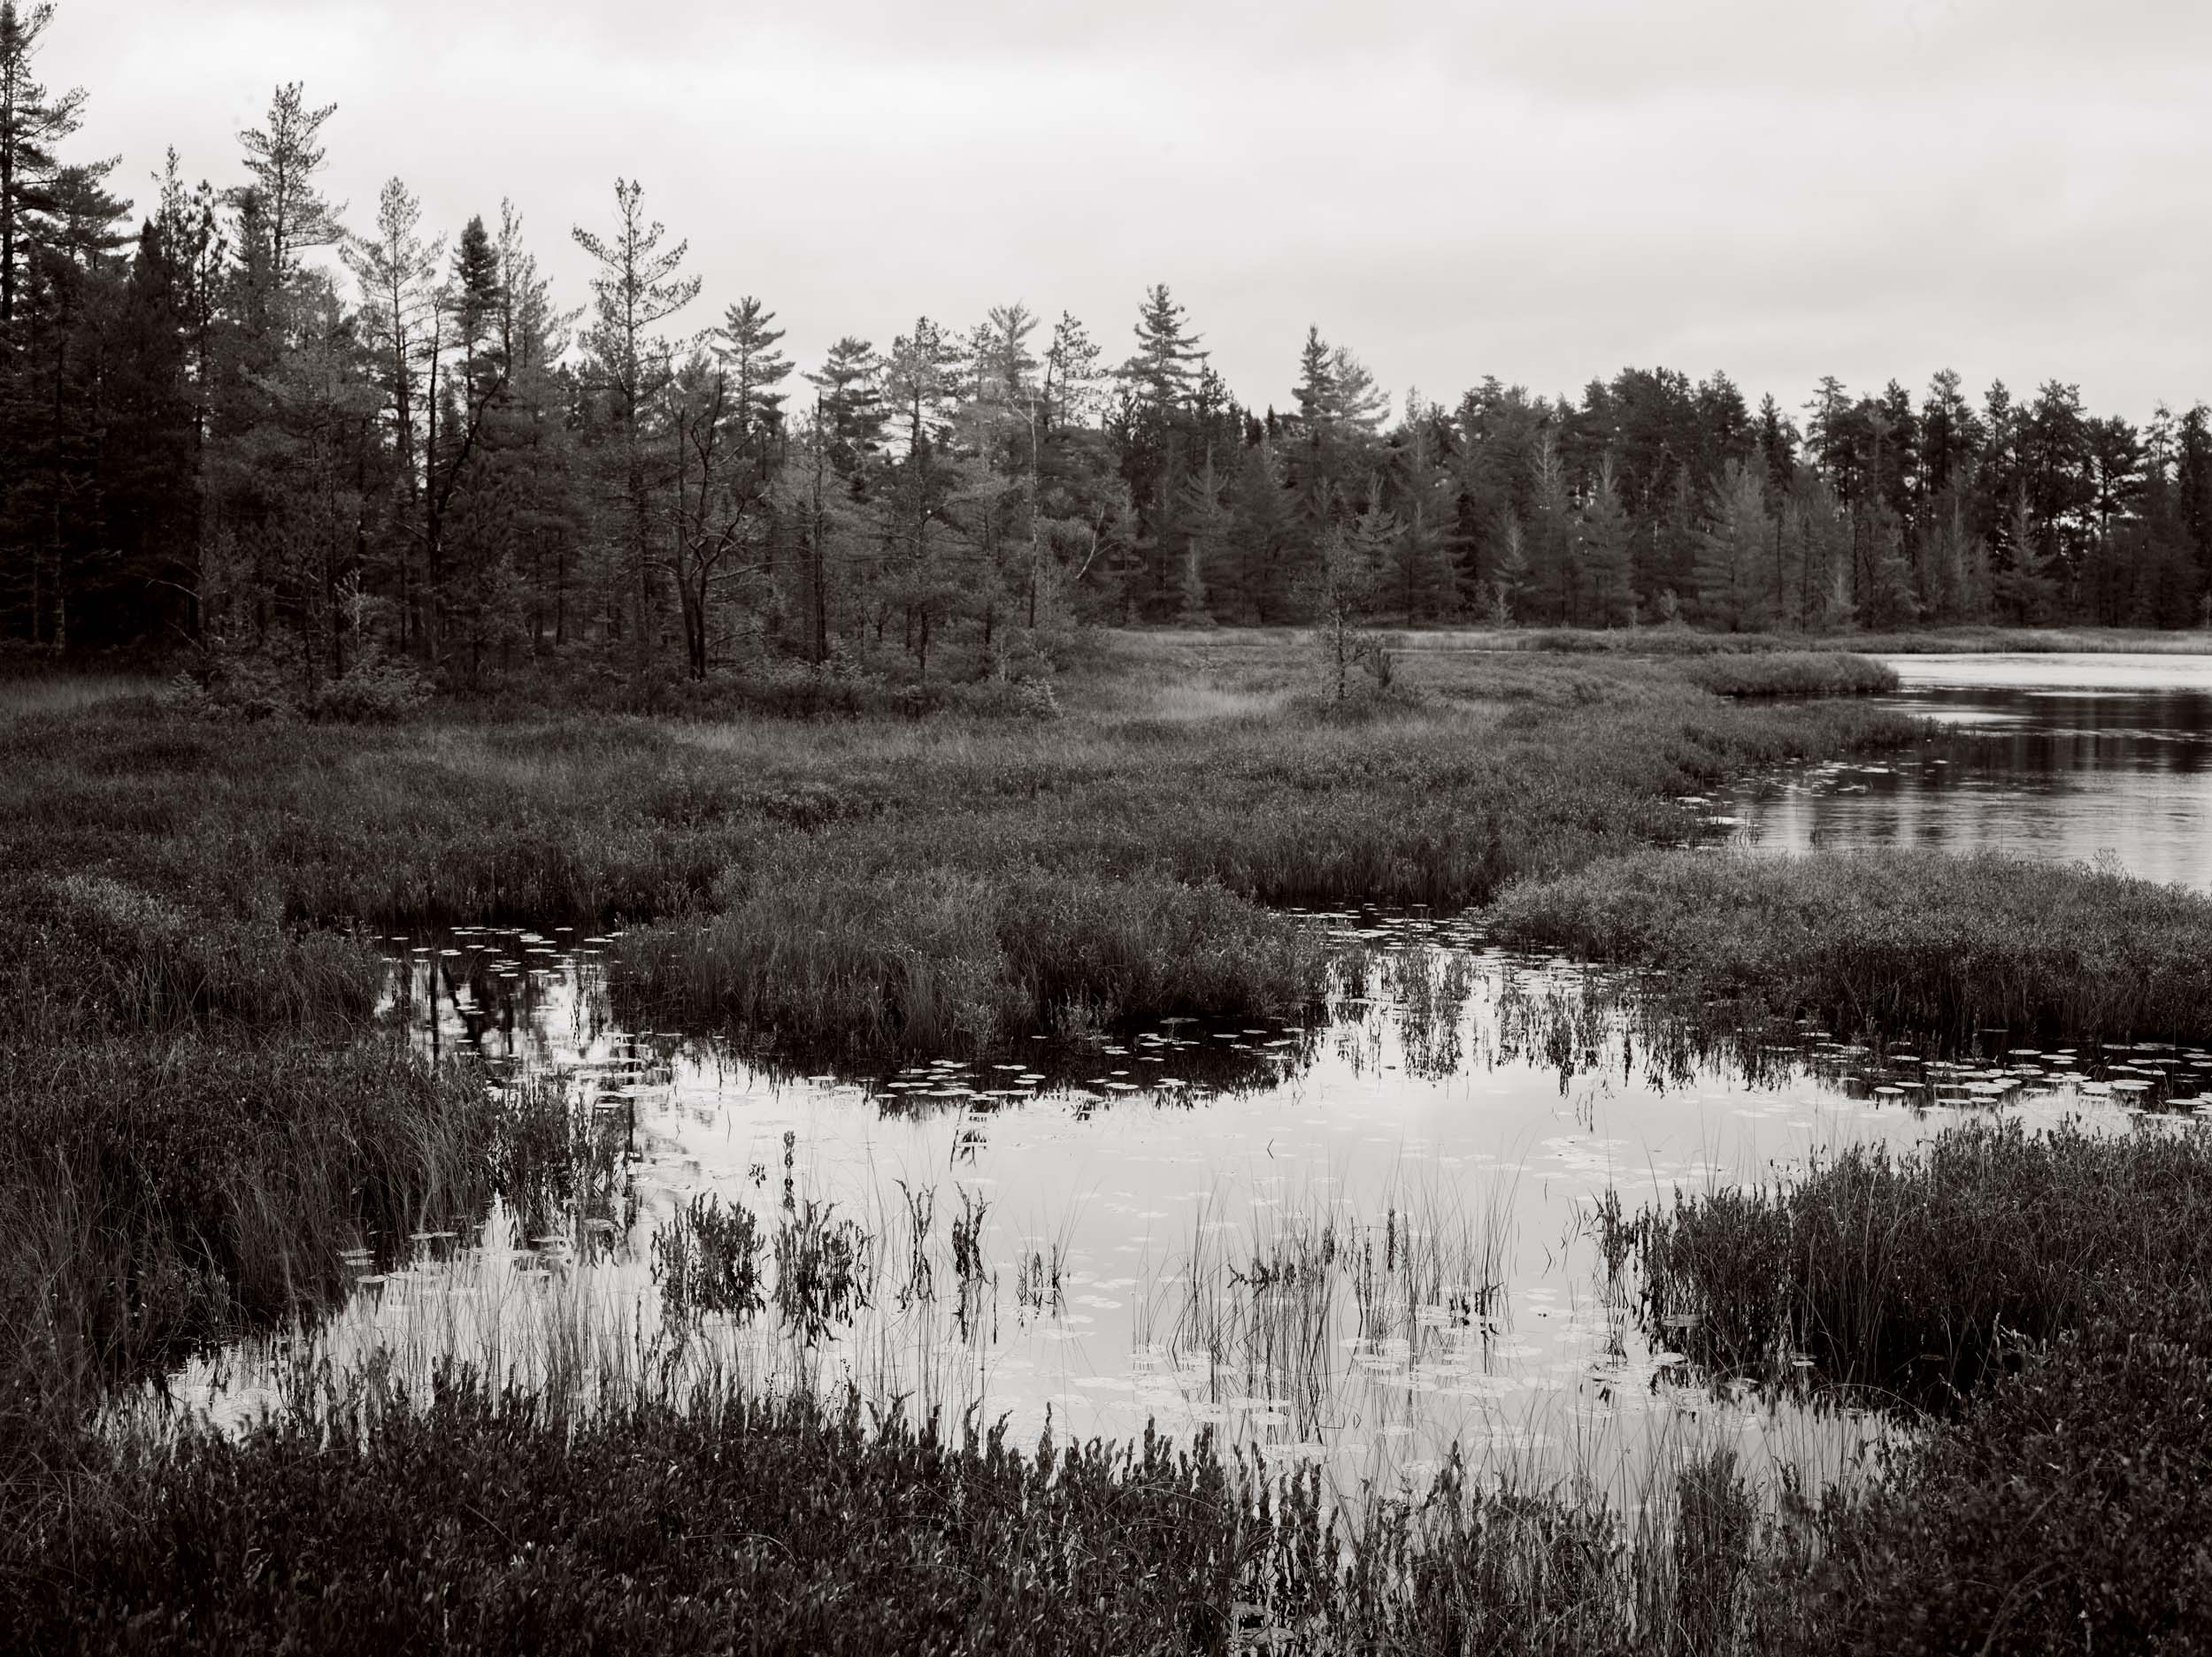 THE BOG - Tahquemanom Falls State Park. Marshy, pikey, boggy. The swamps of Tahquemanom are beautiful, almost pastoral, in a way - manicured by the seasons. Michigan Landscape Photography.